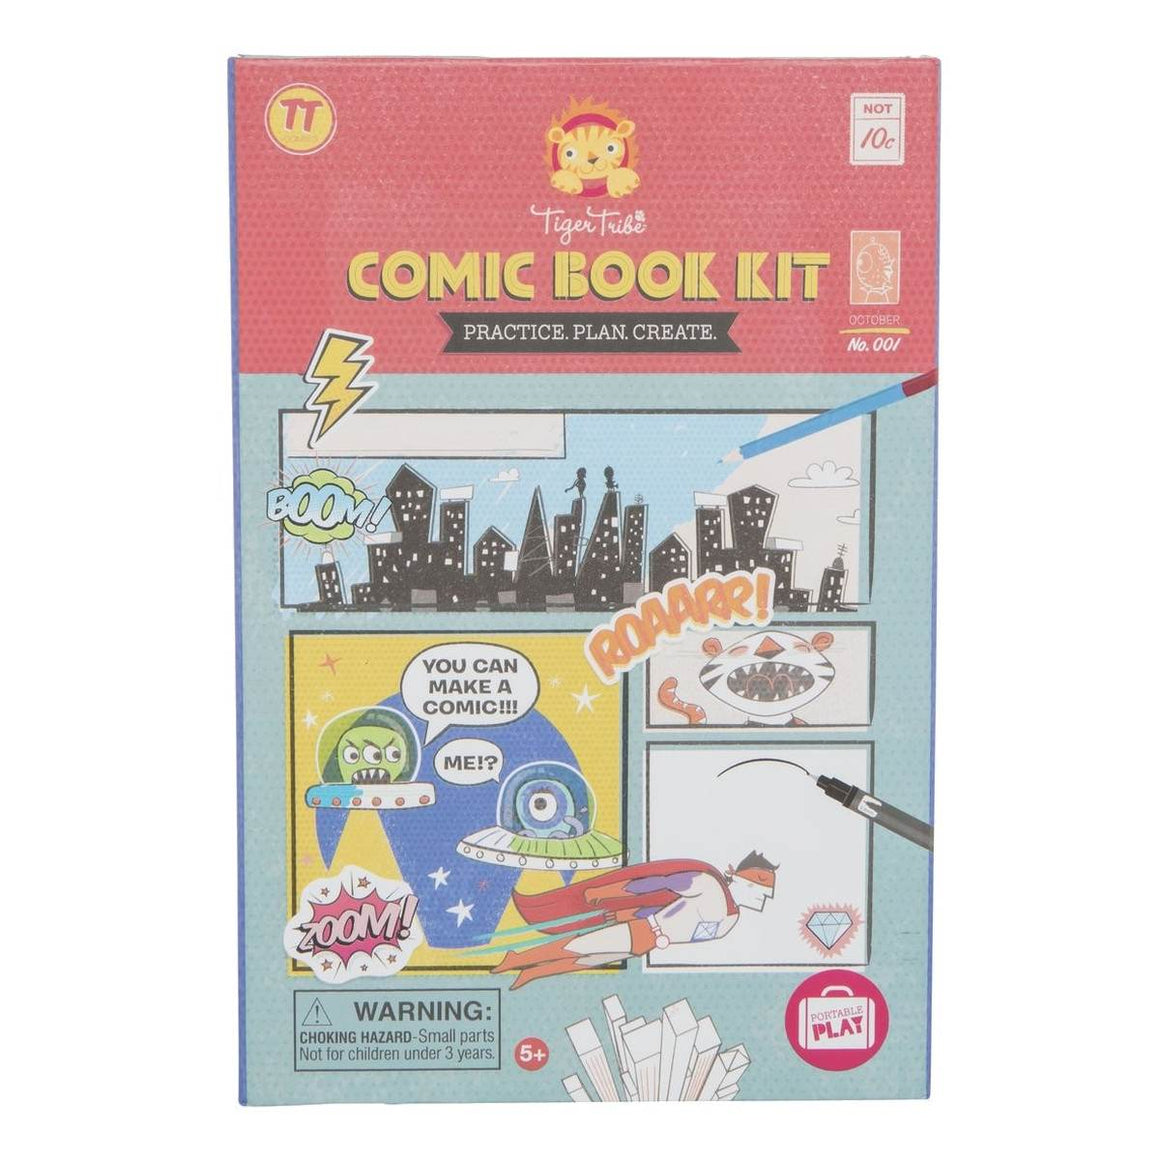 Comic Book Activity Kit - Practice, Plan, Create